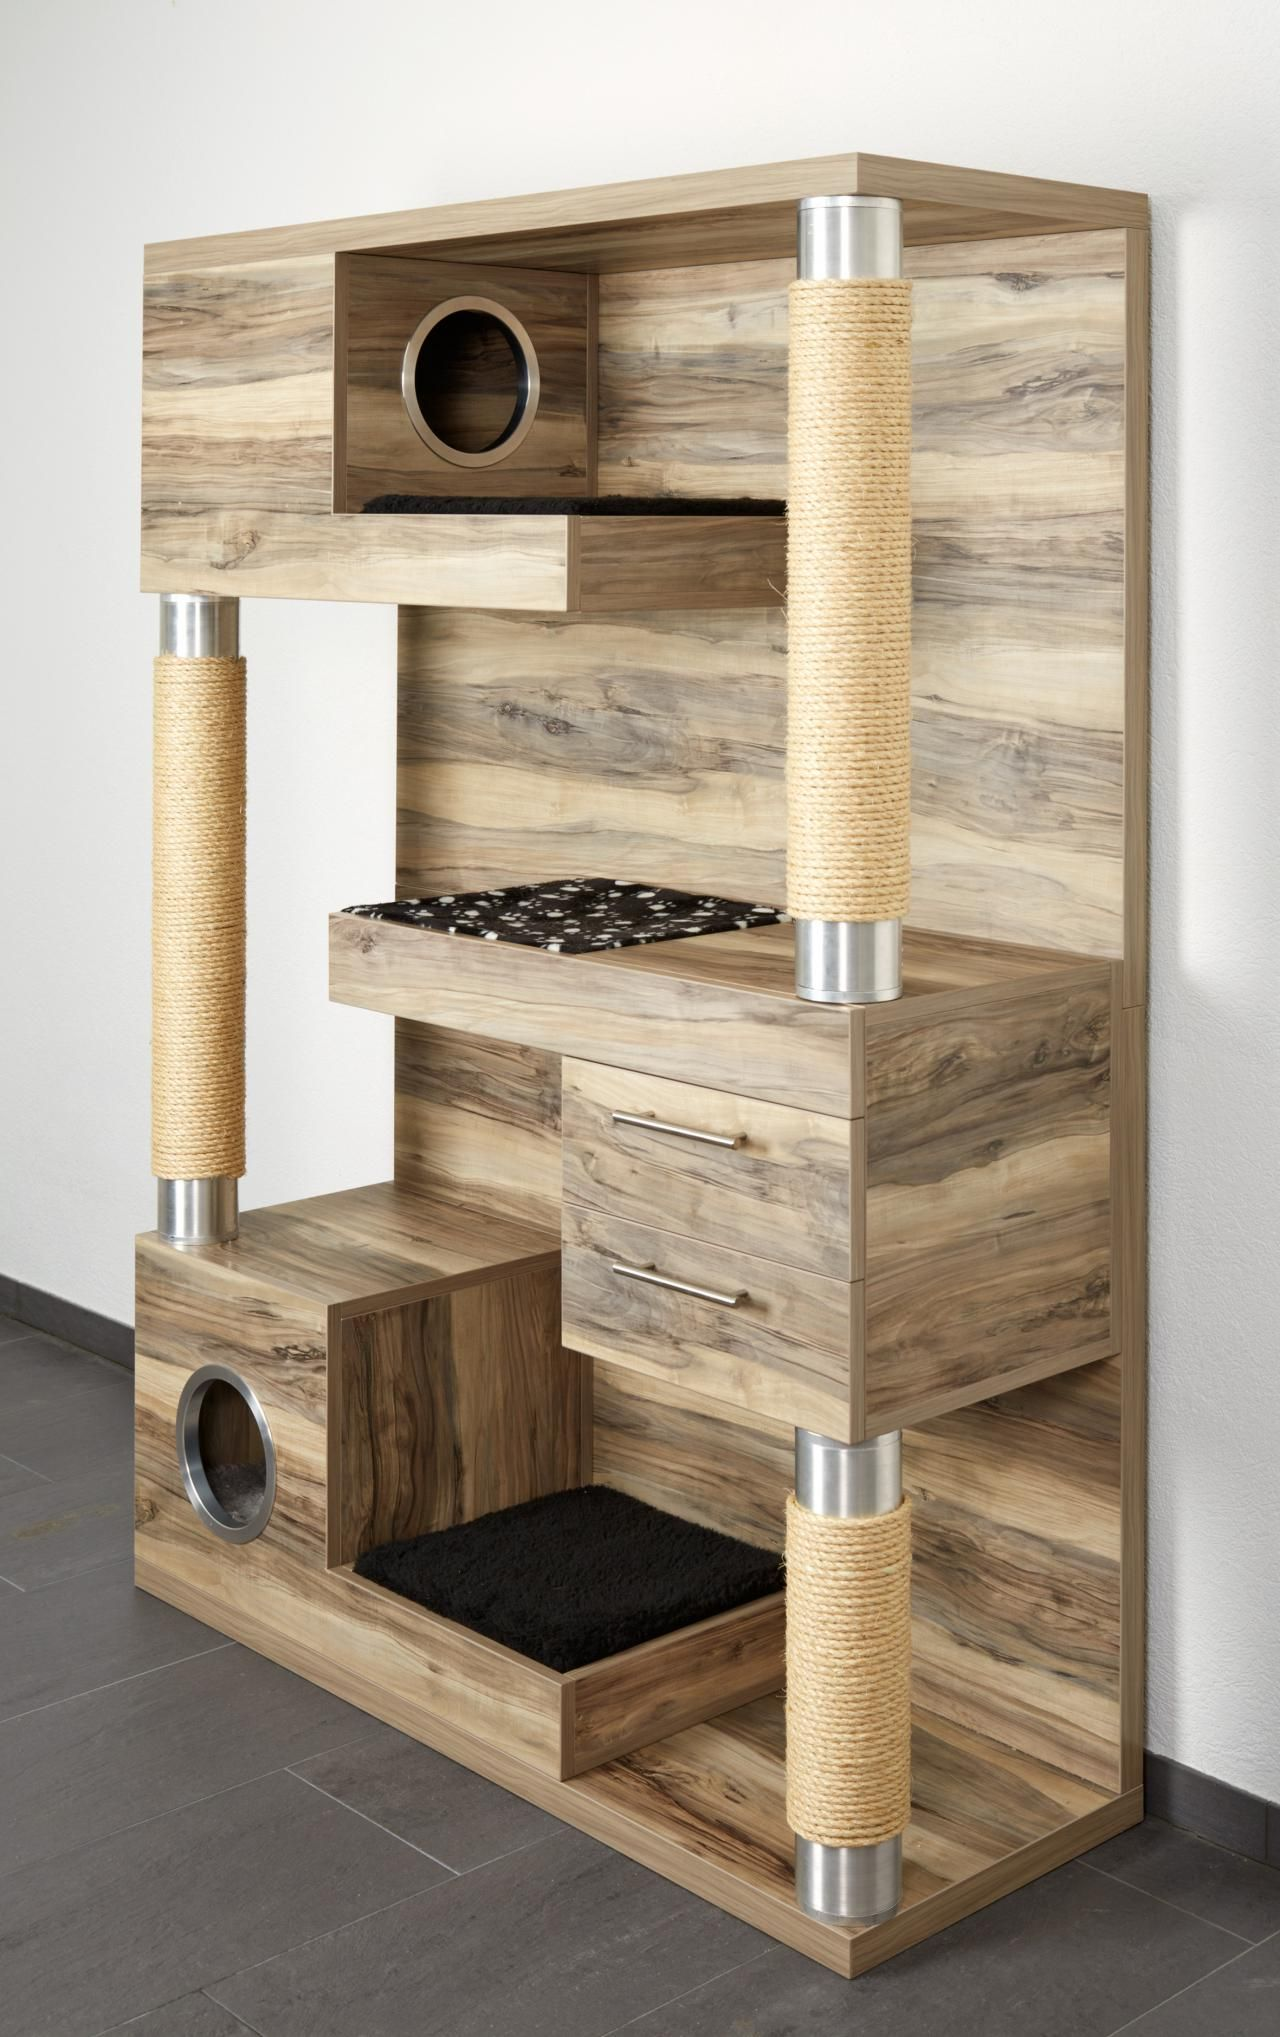 Now This Is A Cat Tree The Catframe Combines Contemporary Wood Sisal Rope Scratching Posts Cubby Holes Soft Pads For Kneading And Sleeping